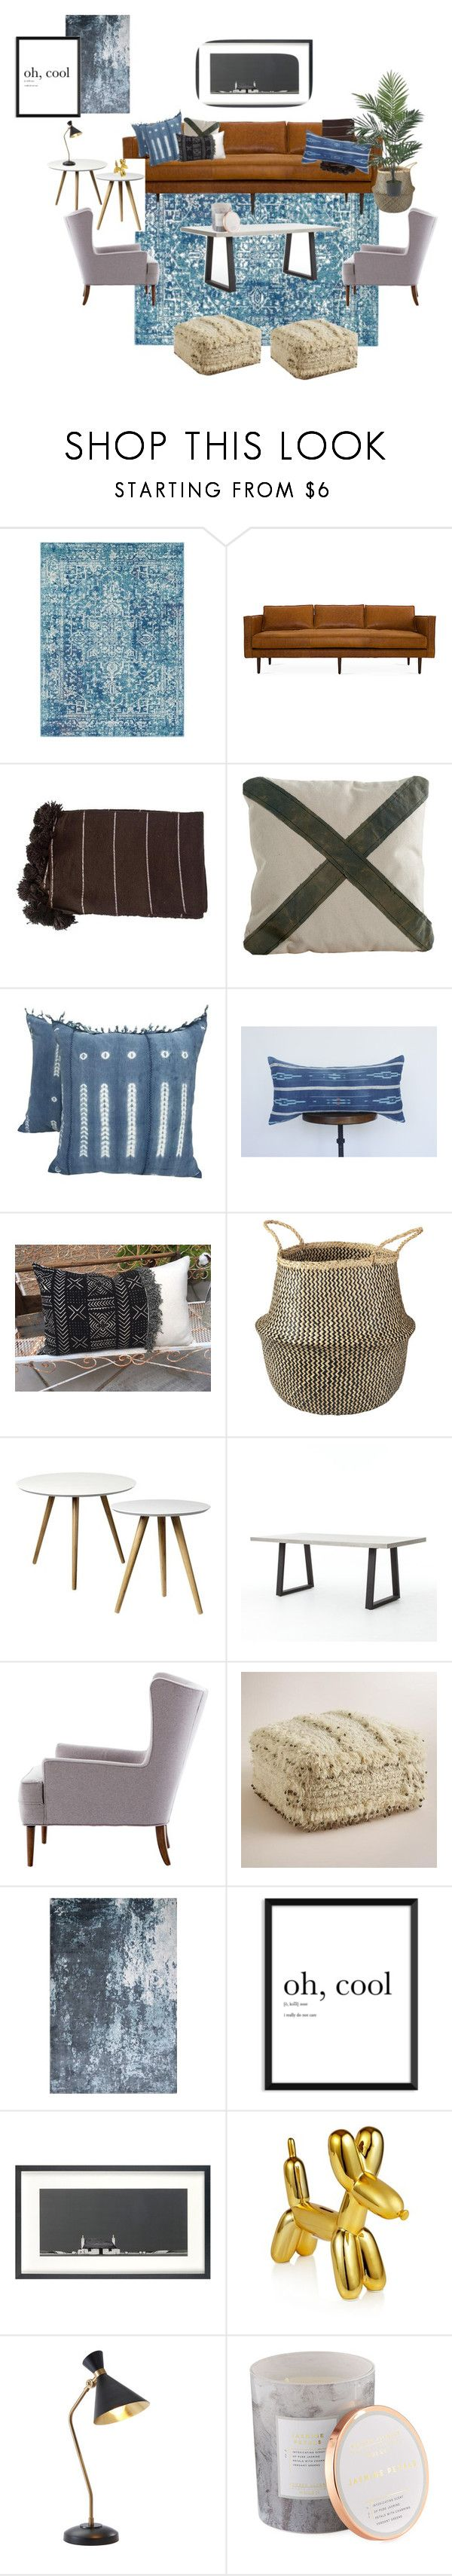 """Blue living"" by andreadavis2 on Polyvore featuring interior, interiors, interior design, home, home decor, interior decorating, Surya, Cost Plus World Market, John Lewis and Global Views"